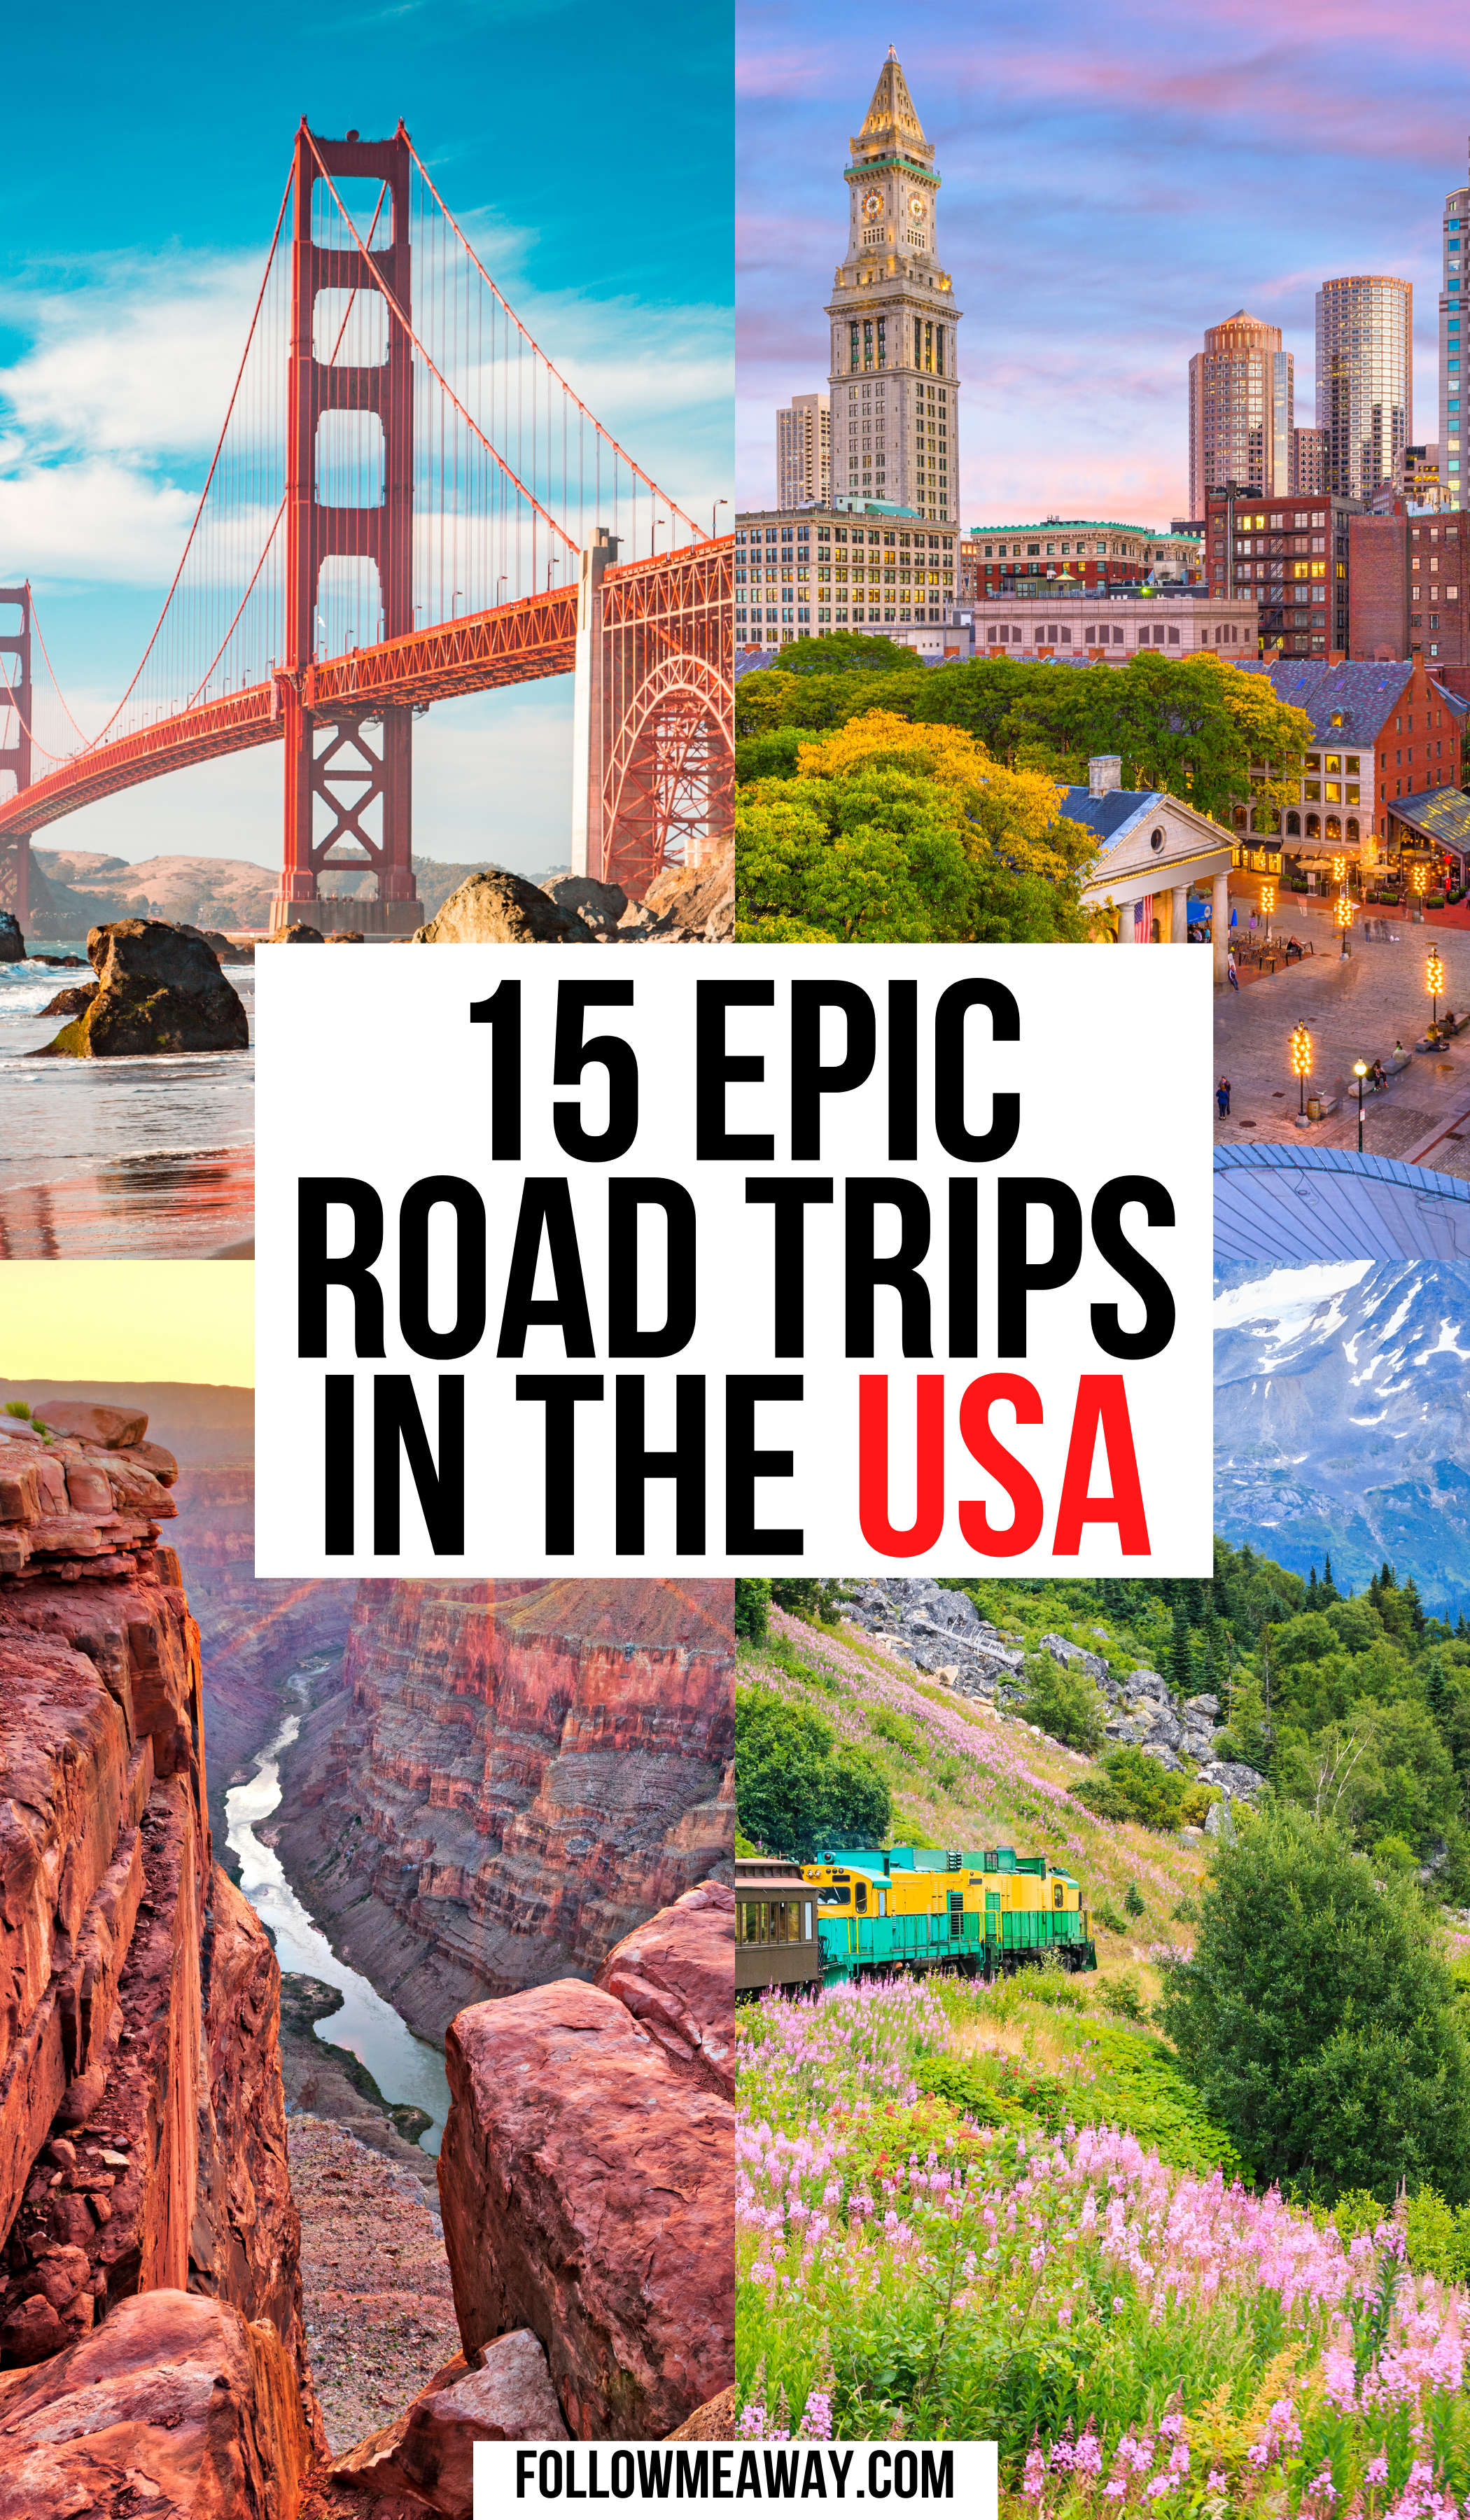 The Best USA Road Trips To Take This Summer | How To Plan The Best USA Road Trip | where to go on your usa road trip | best usa destinations | bucket list locations for the us | united states road trip guide | things to do on your west coast road trip #roadtrip #usaroadtrip